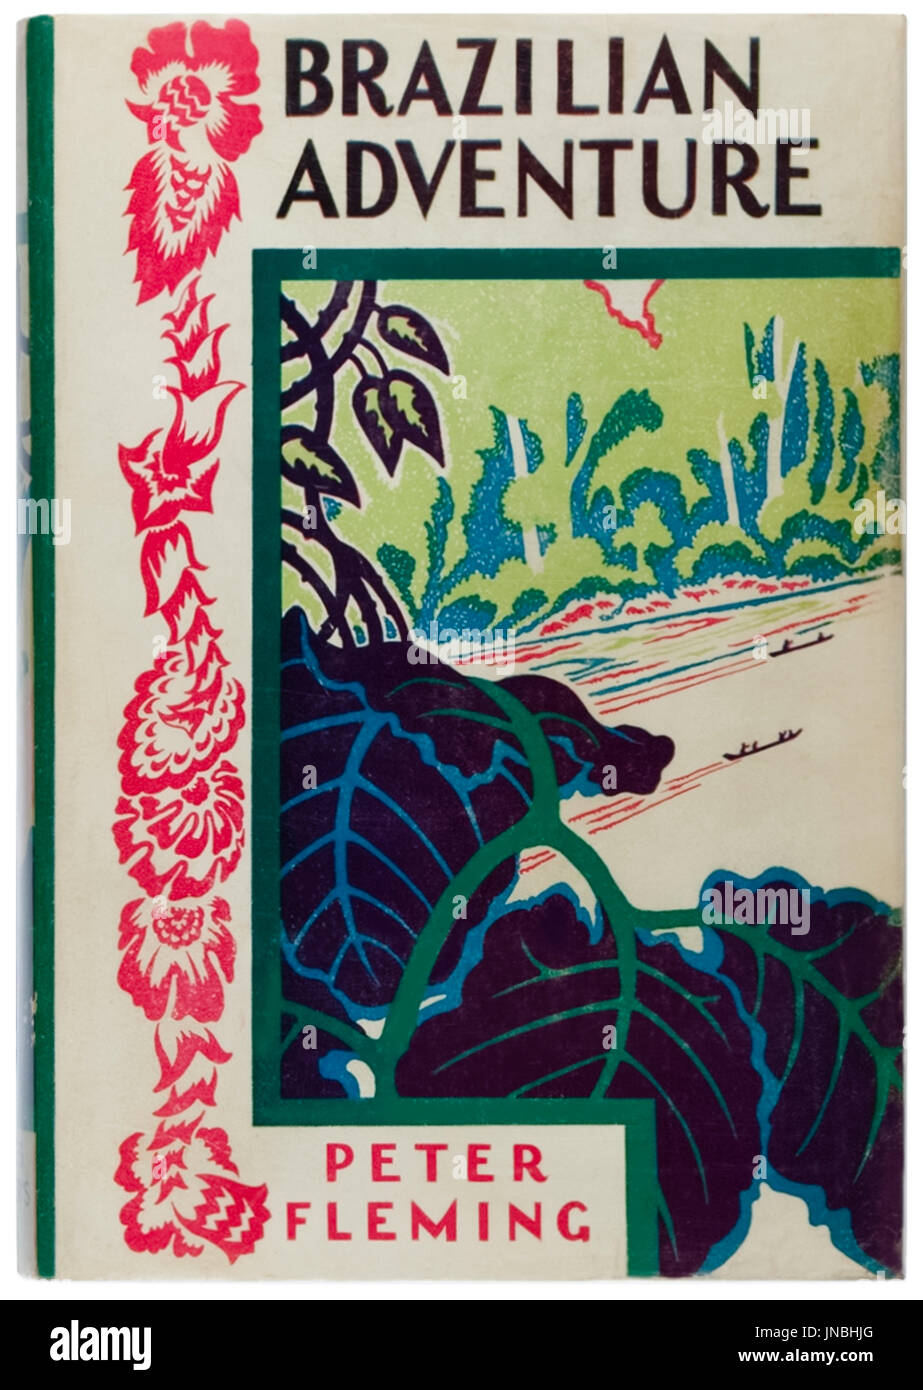 'Brazilian Adventure' by Peter Fleming published by Charles Scribner's Sons in 1934, photograph of first edition front cover. - Stock Image